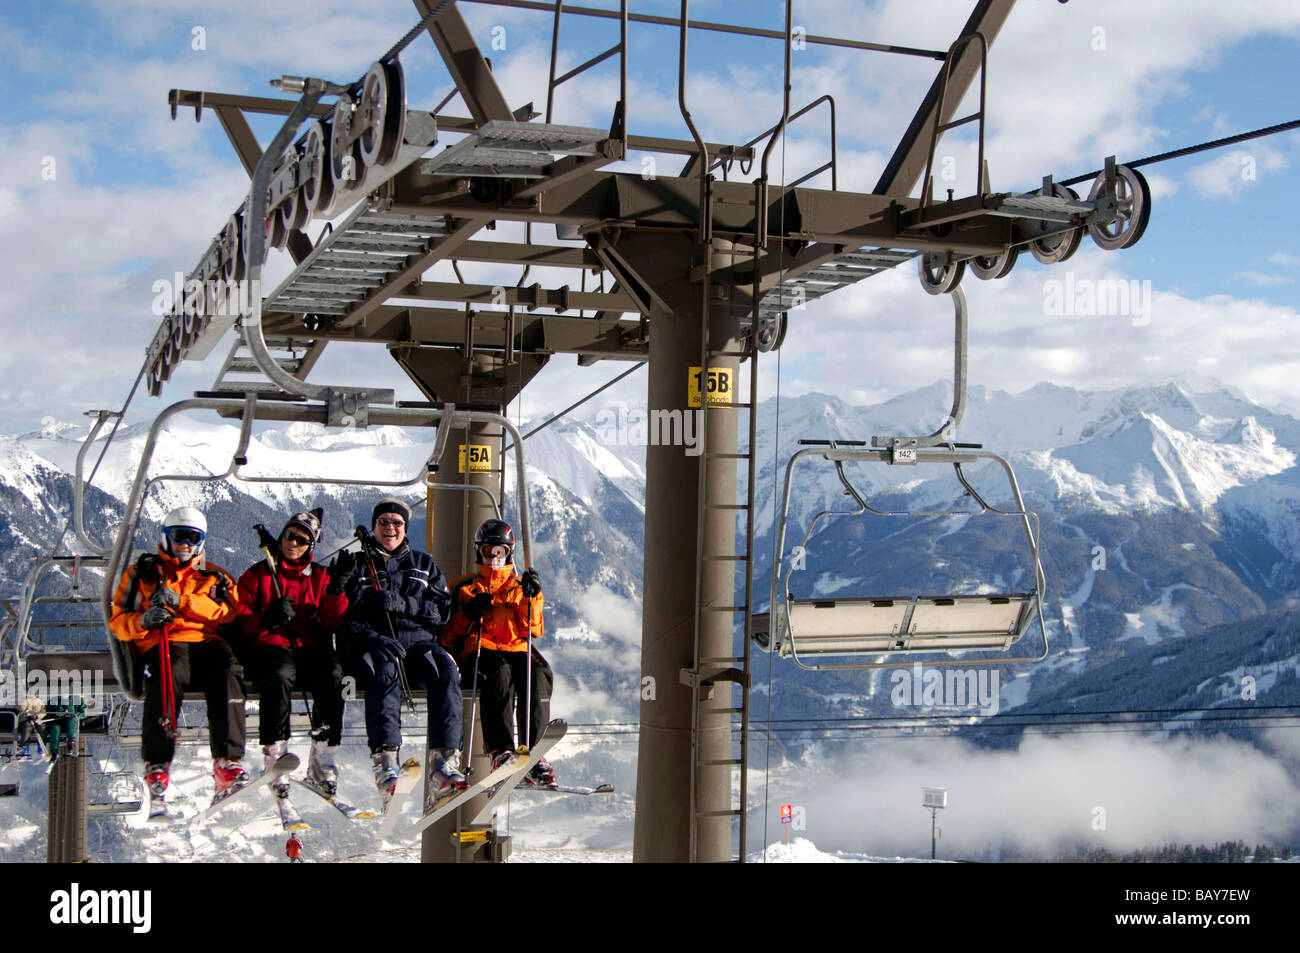 A group of skiers sitting on a chair lift, Bad Gastein, Austria - Stock Image